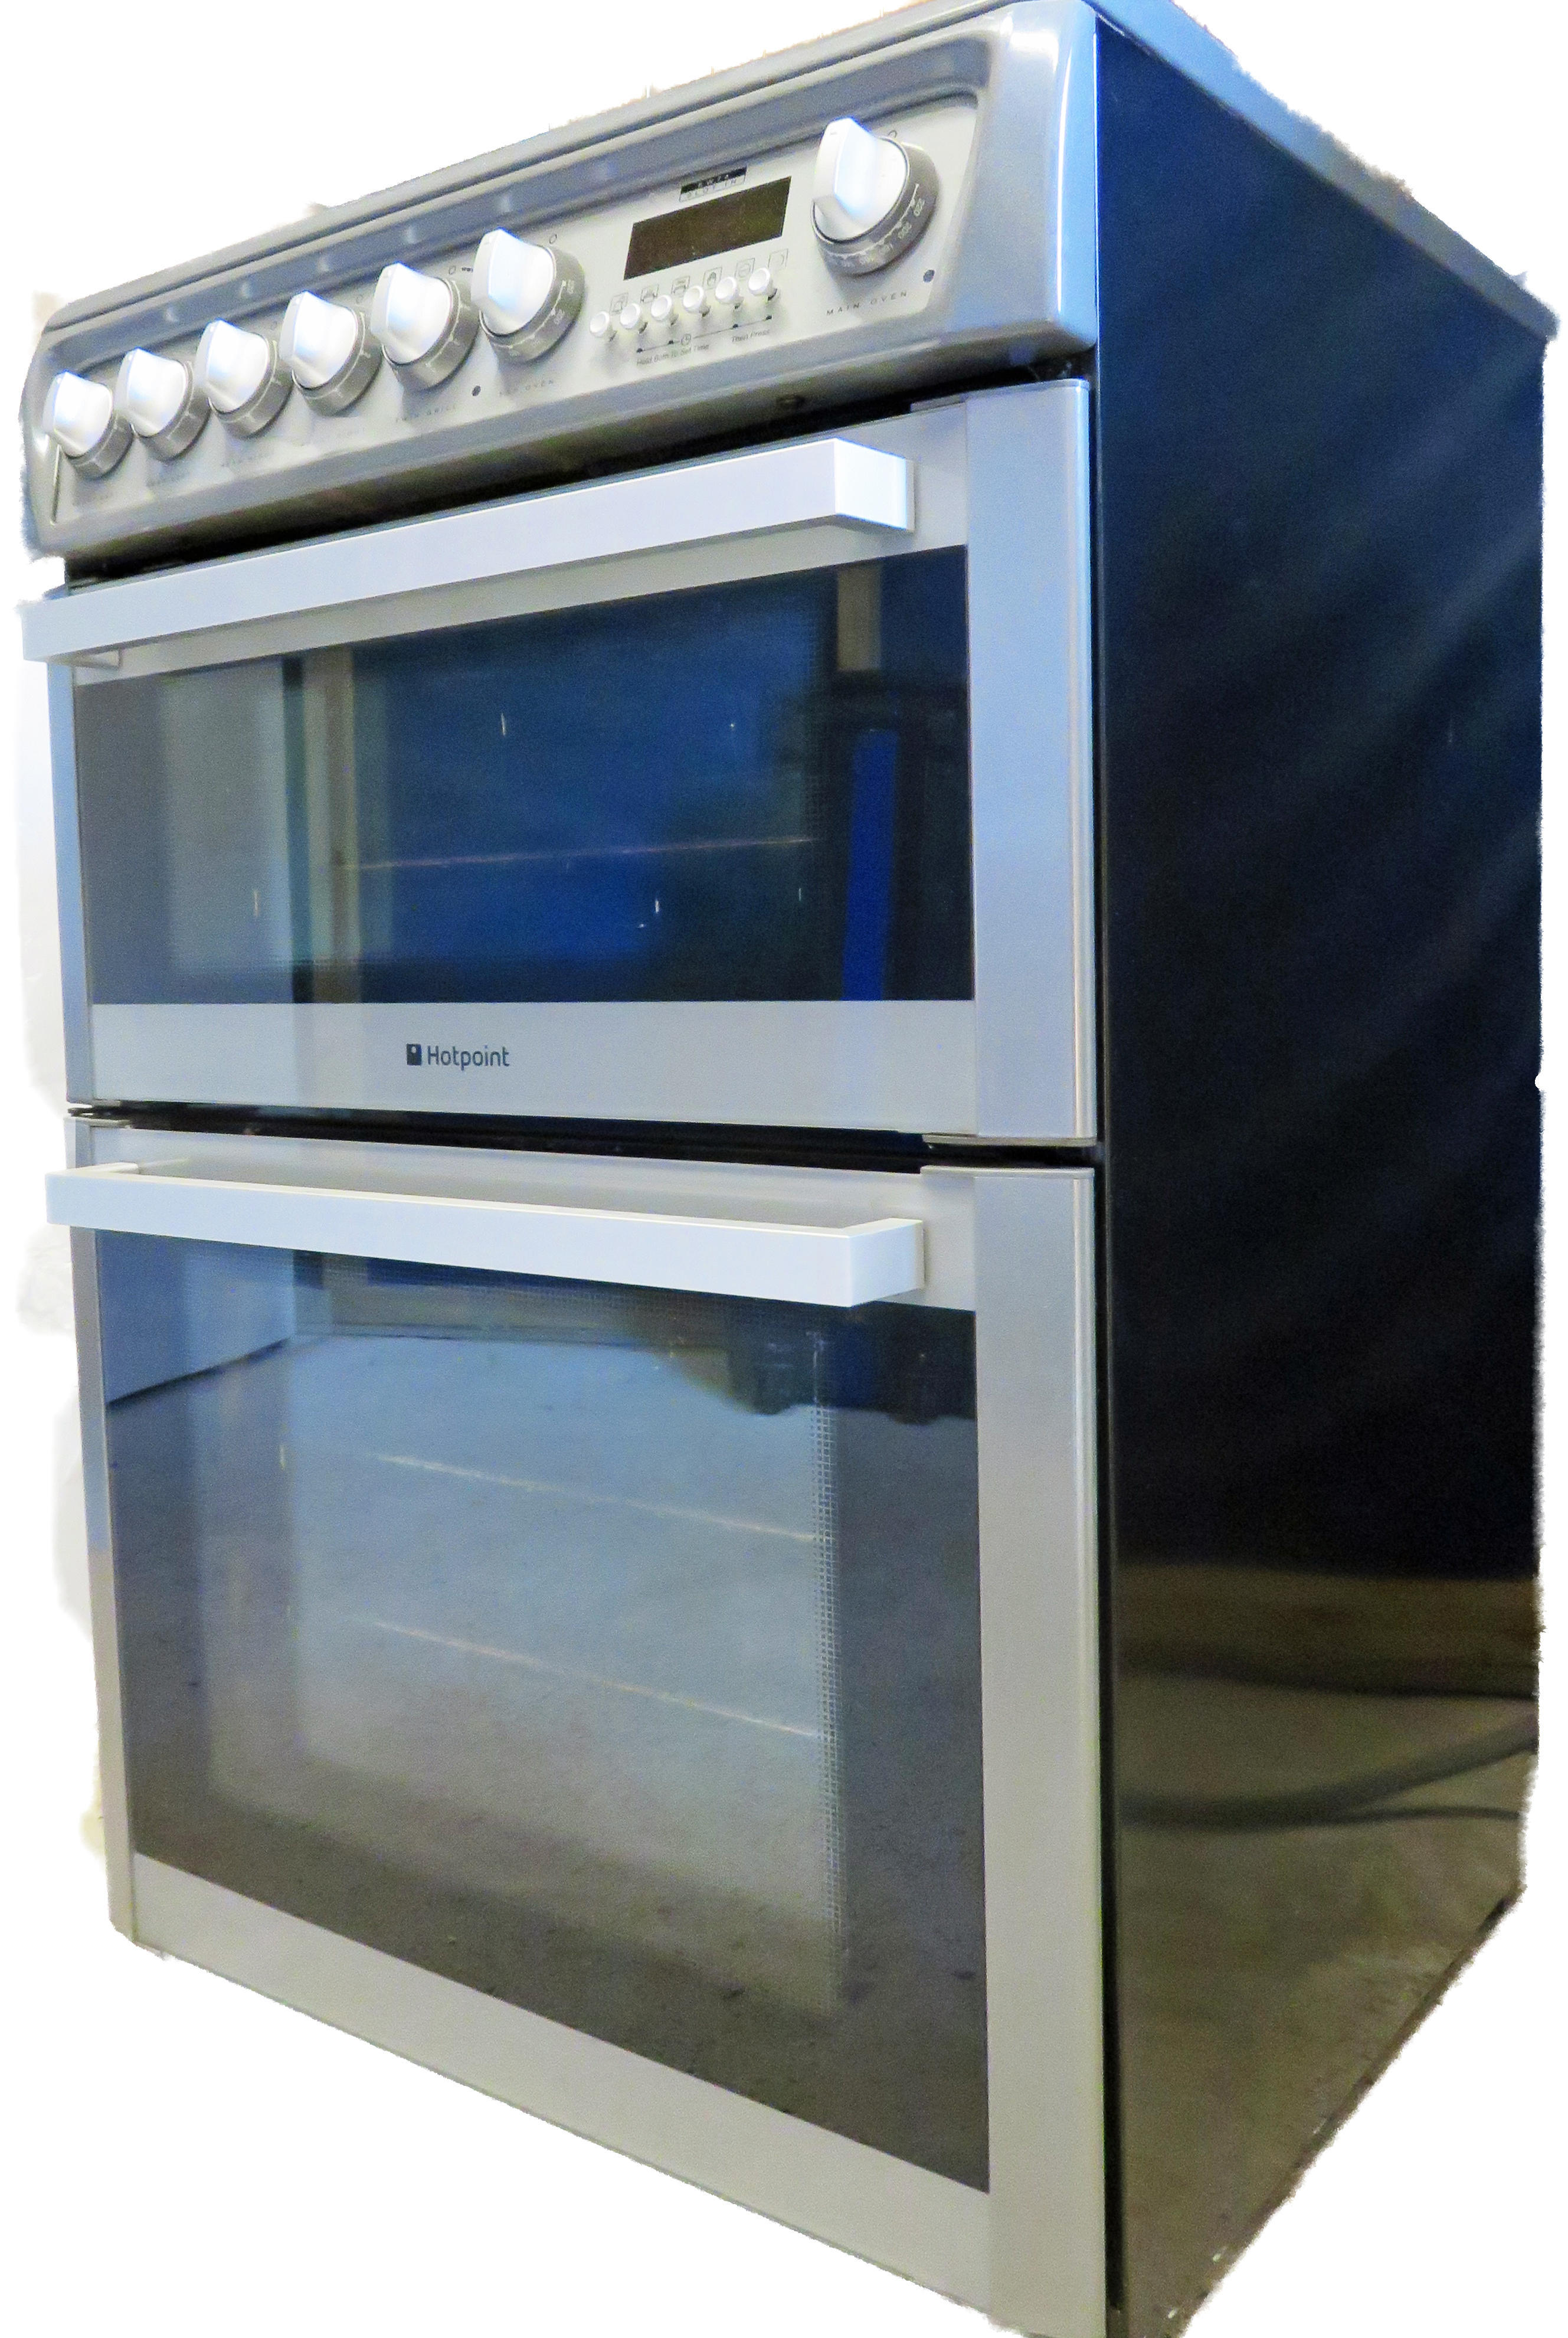 Hotpoint 60cm slot-in double oven cooker